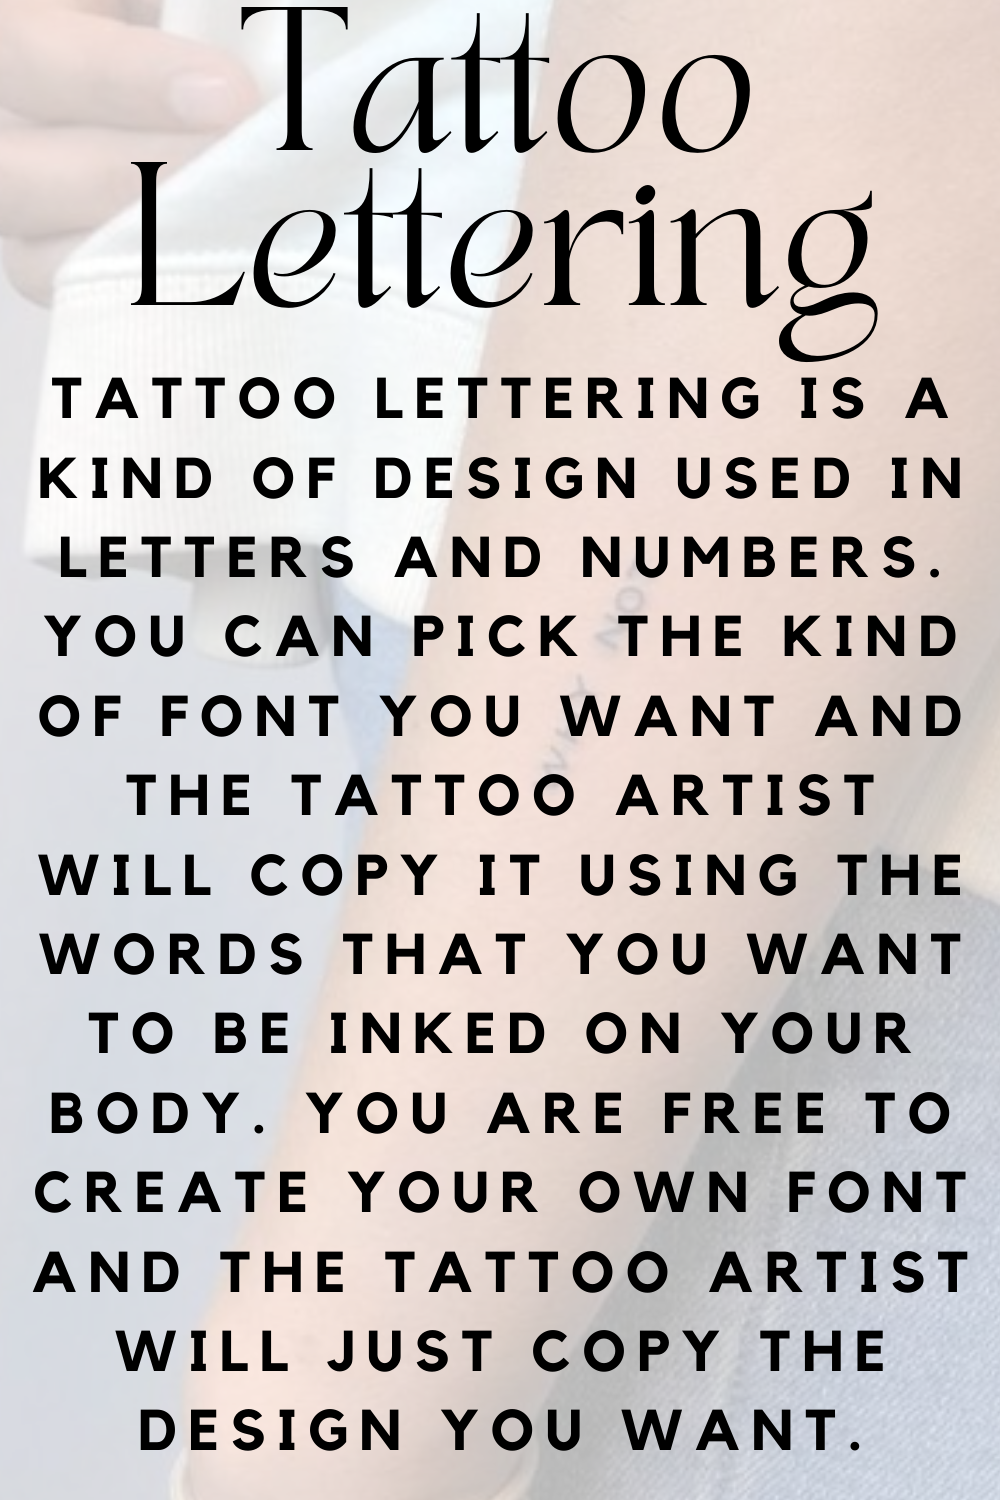 Tattoo Lettering Tips